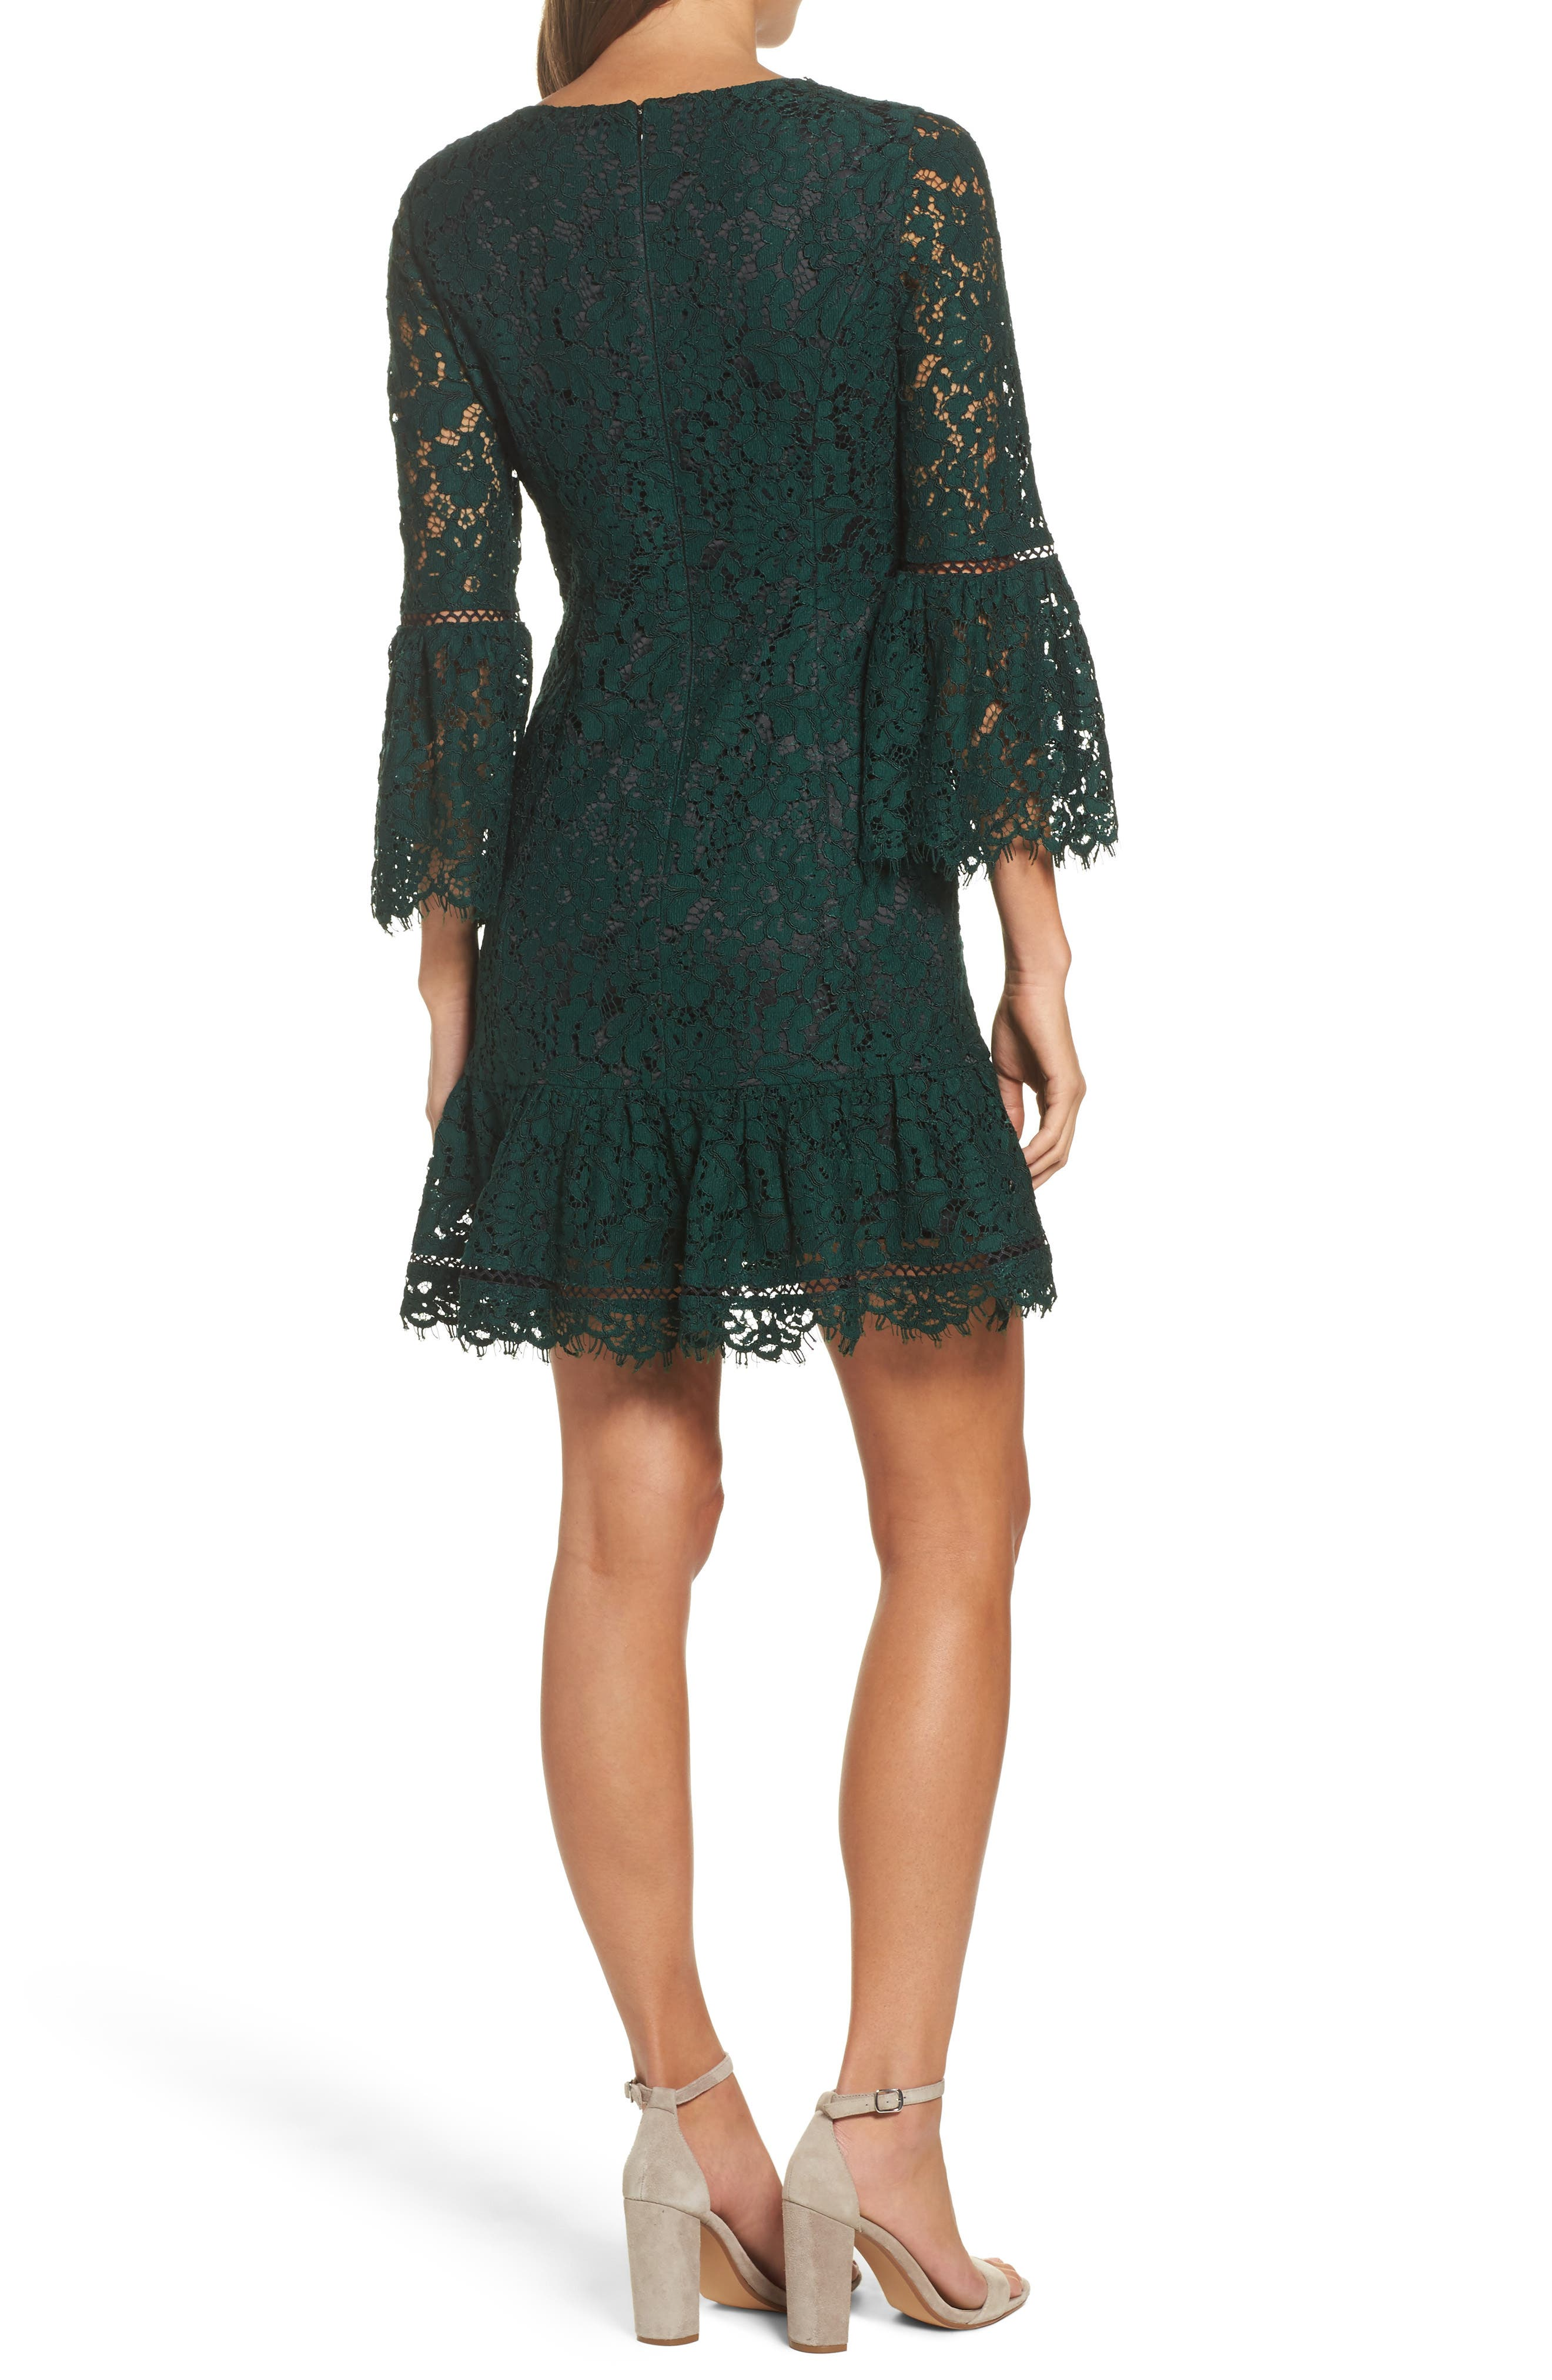 ELIZA J,                             Bell Sleeve Lace Cocktail Dress,                             Alternate thumbnail 2, color,                             GREEN/ BLACK